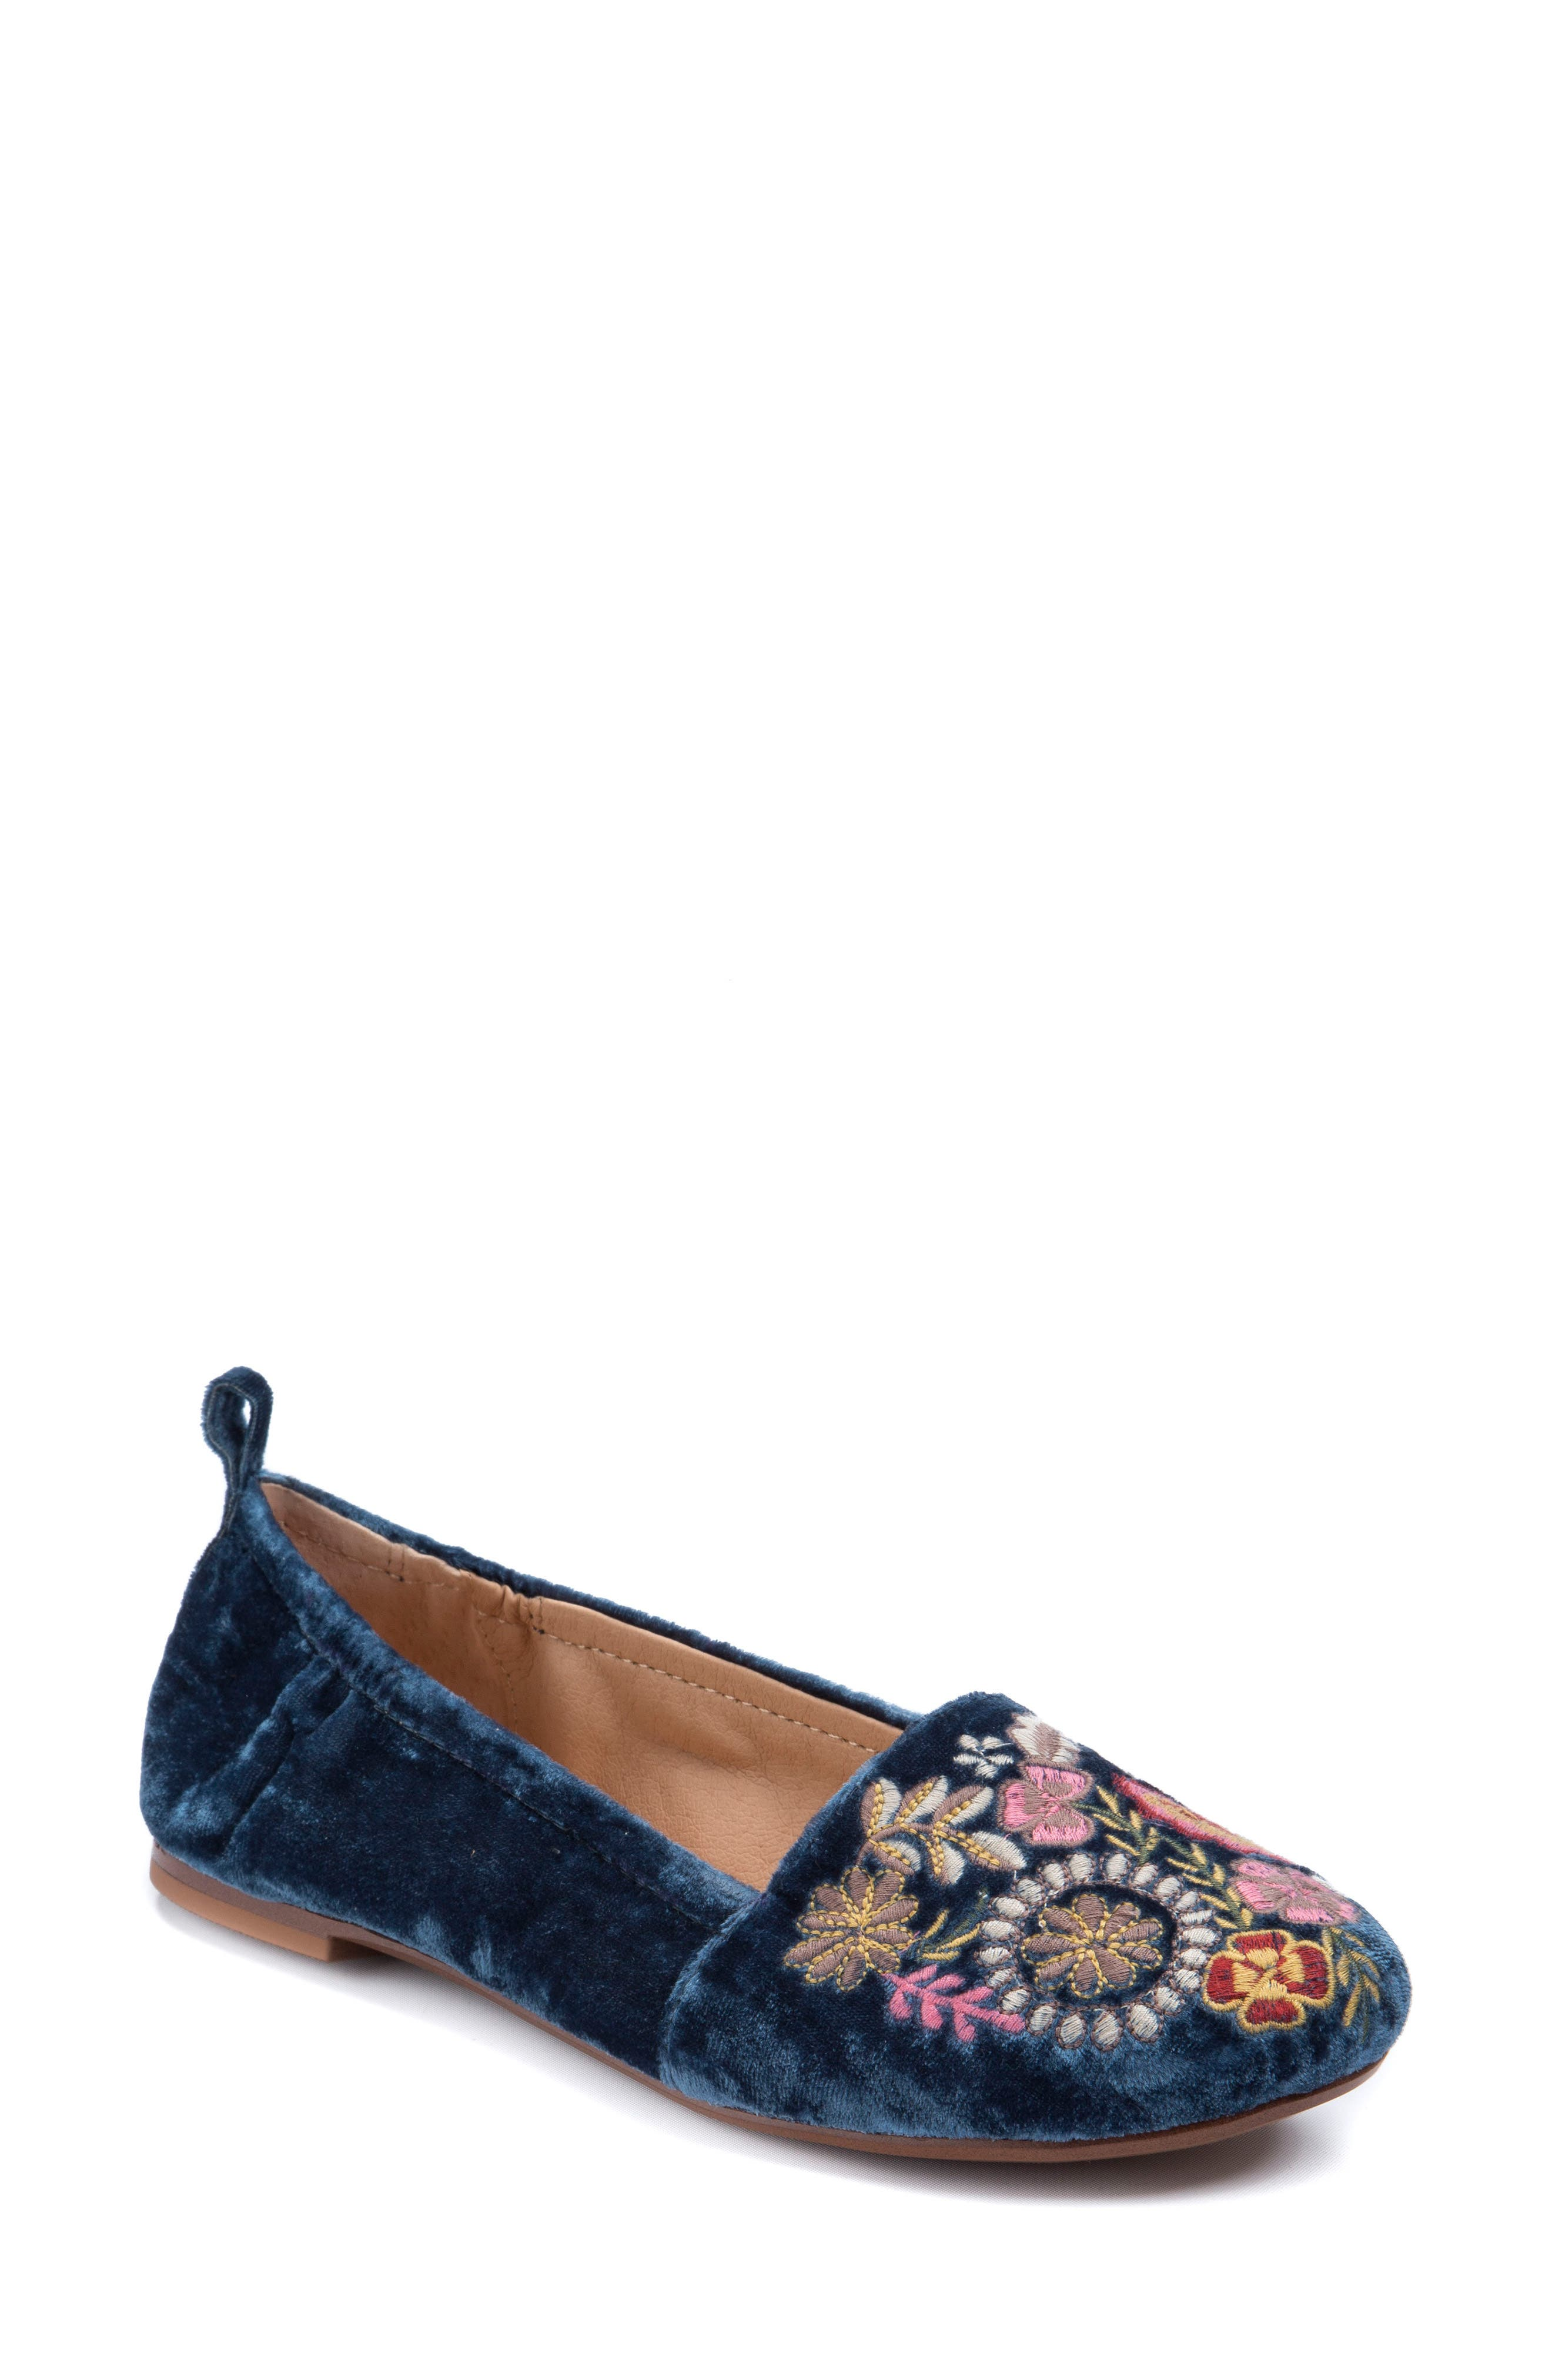 Gayla Floral Embroidered Flat,                             Main thumbnail 1, color,